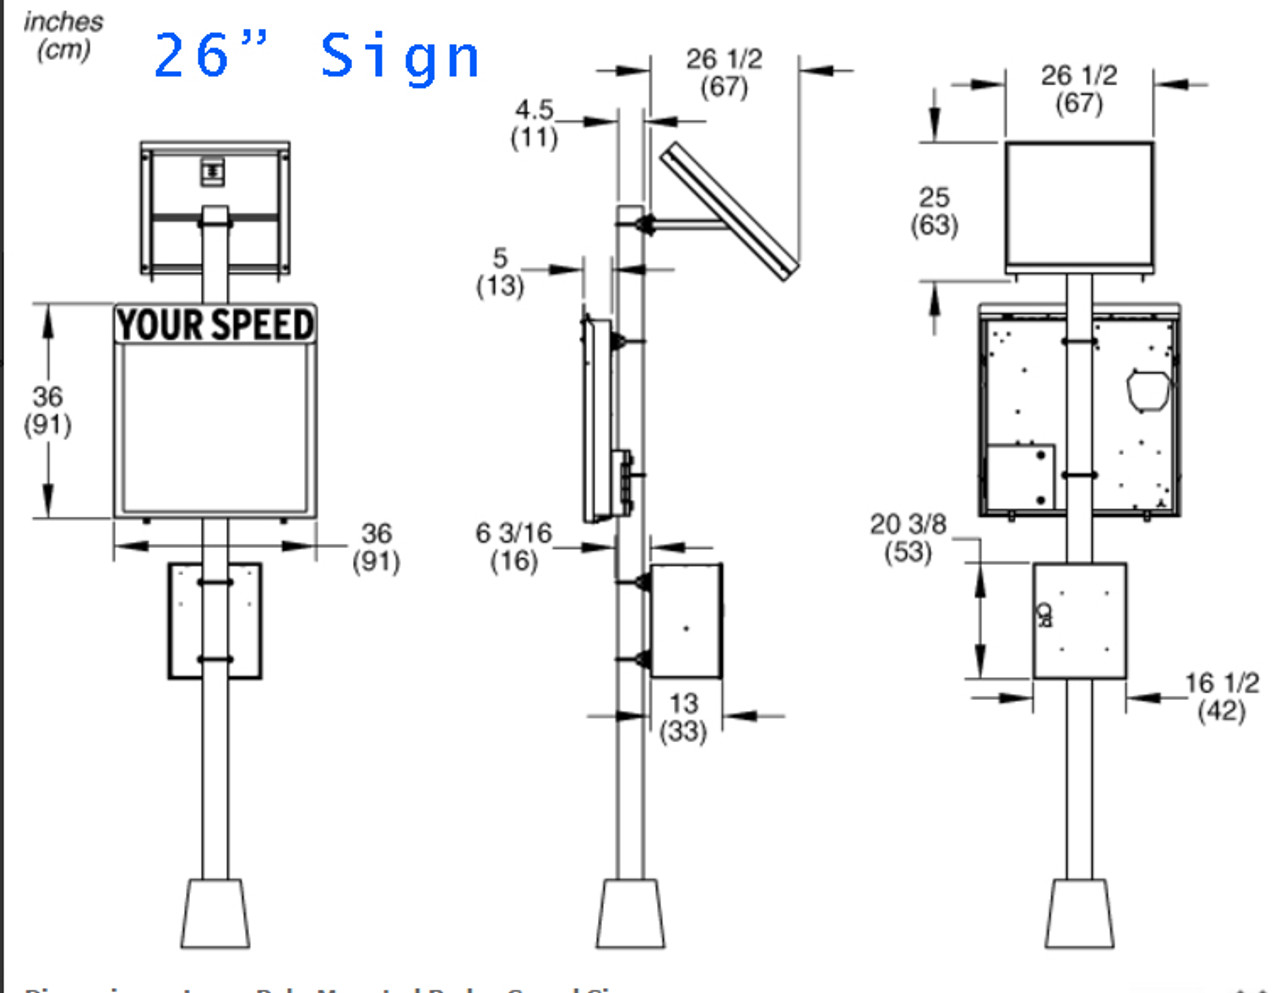 Pole Mount Radar Sd Signs by WANCO, AC or Solar Powered IN STOCK on